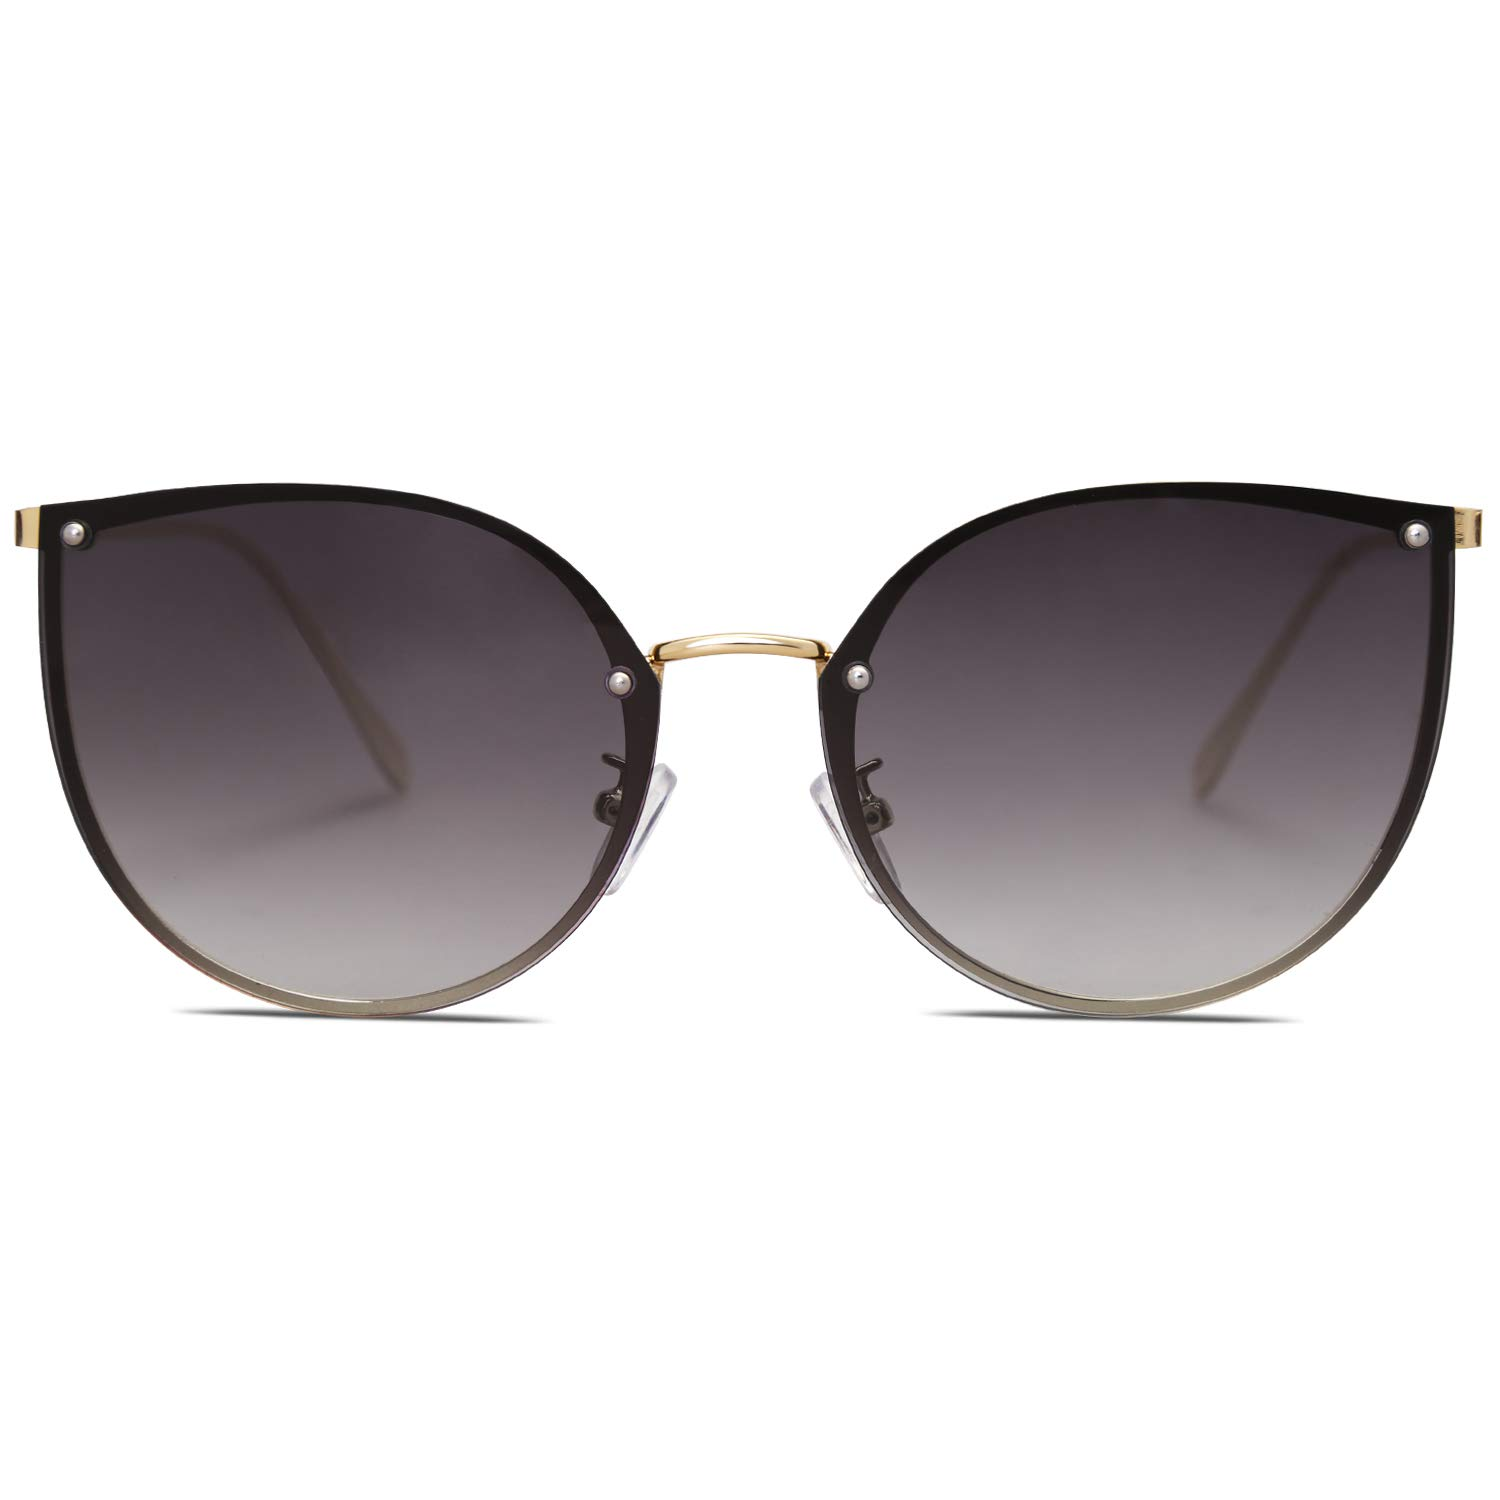 SOJOS Cat Eye Round Sunglasses for Women Metal Frame UV400 Lens SJ1119 with Gold Frame/Gradient Grey Lens by SOJOS